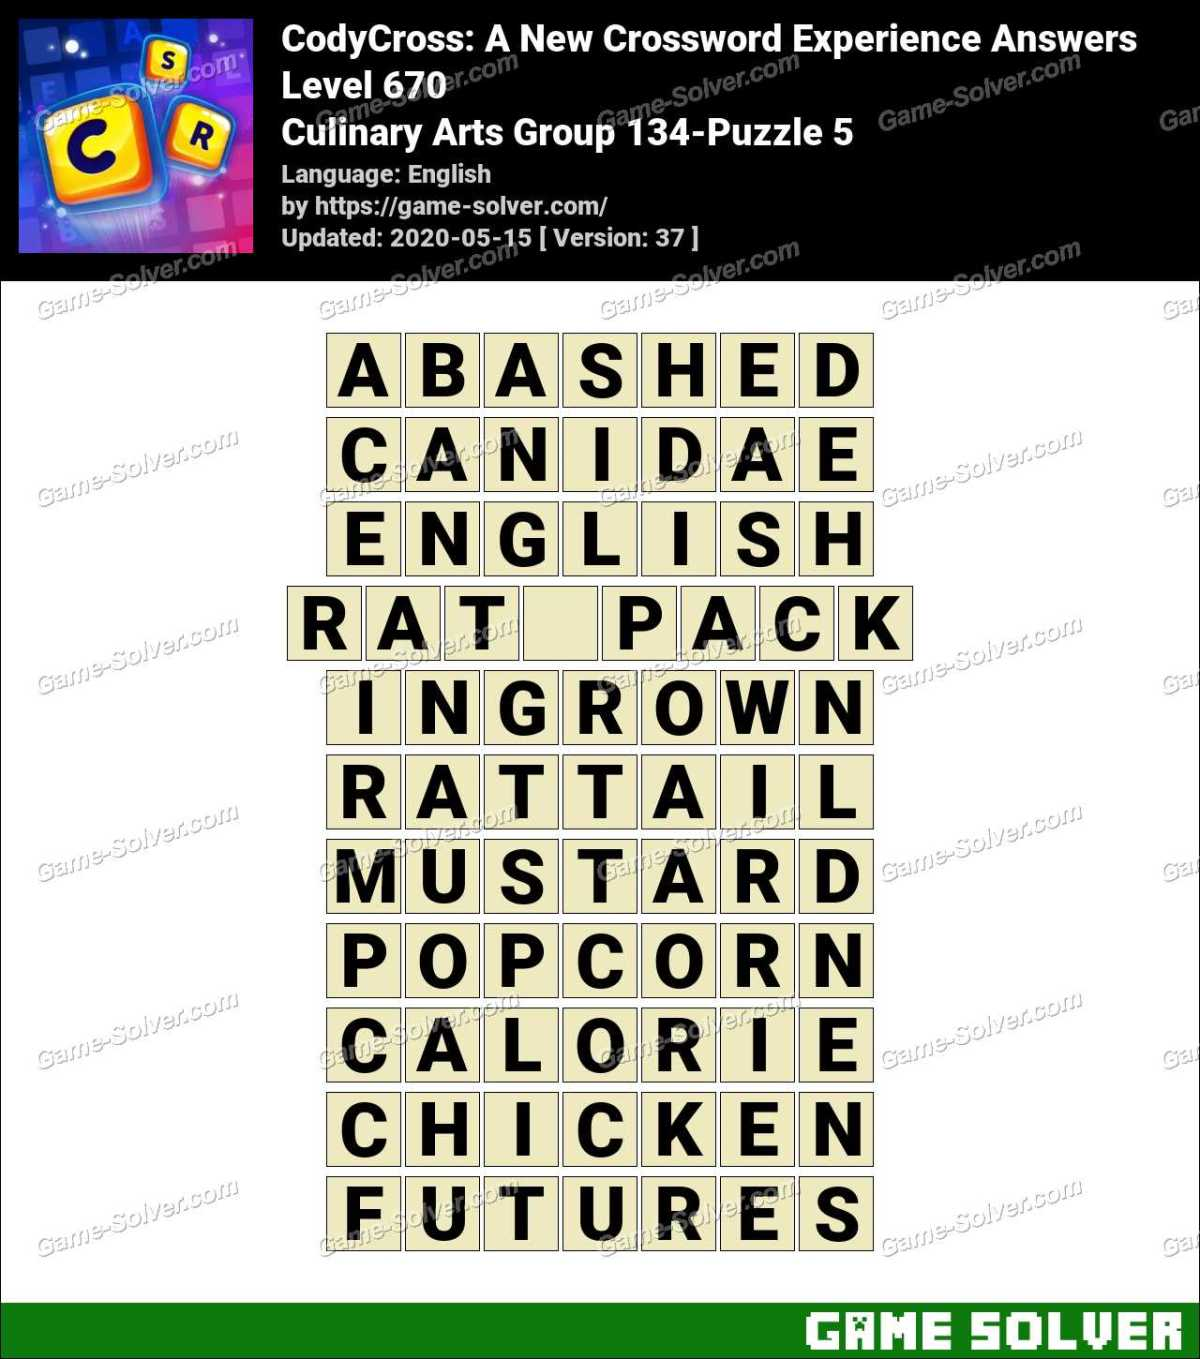 CodyCross Culinary Arts Group 134-Puzzle 5 Answers